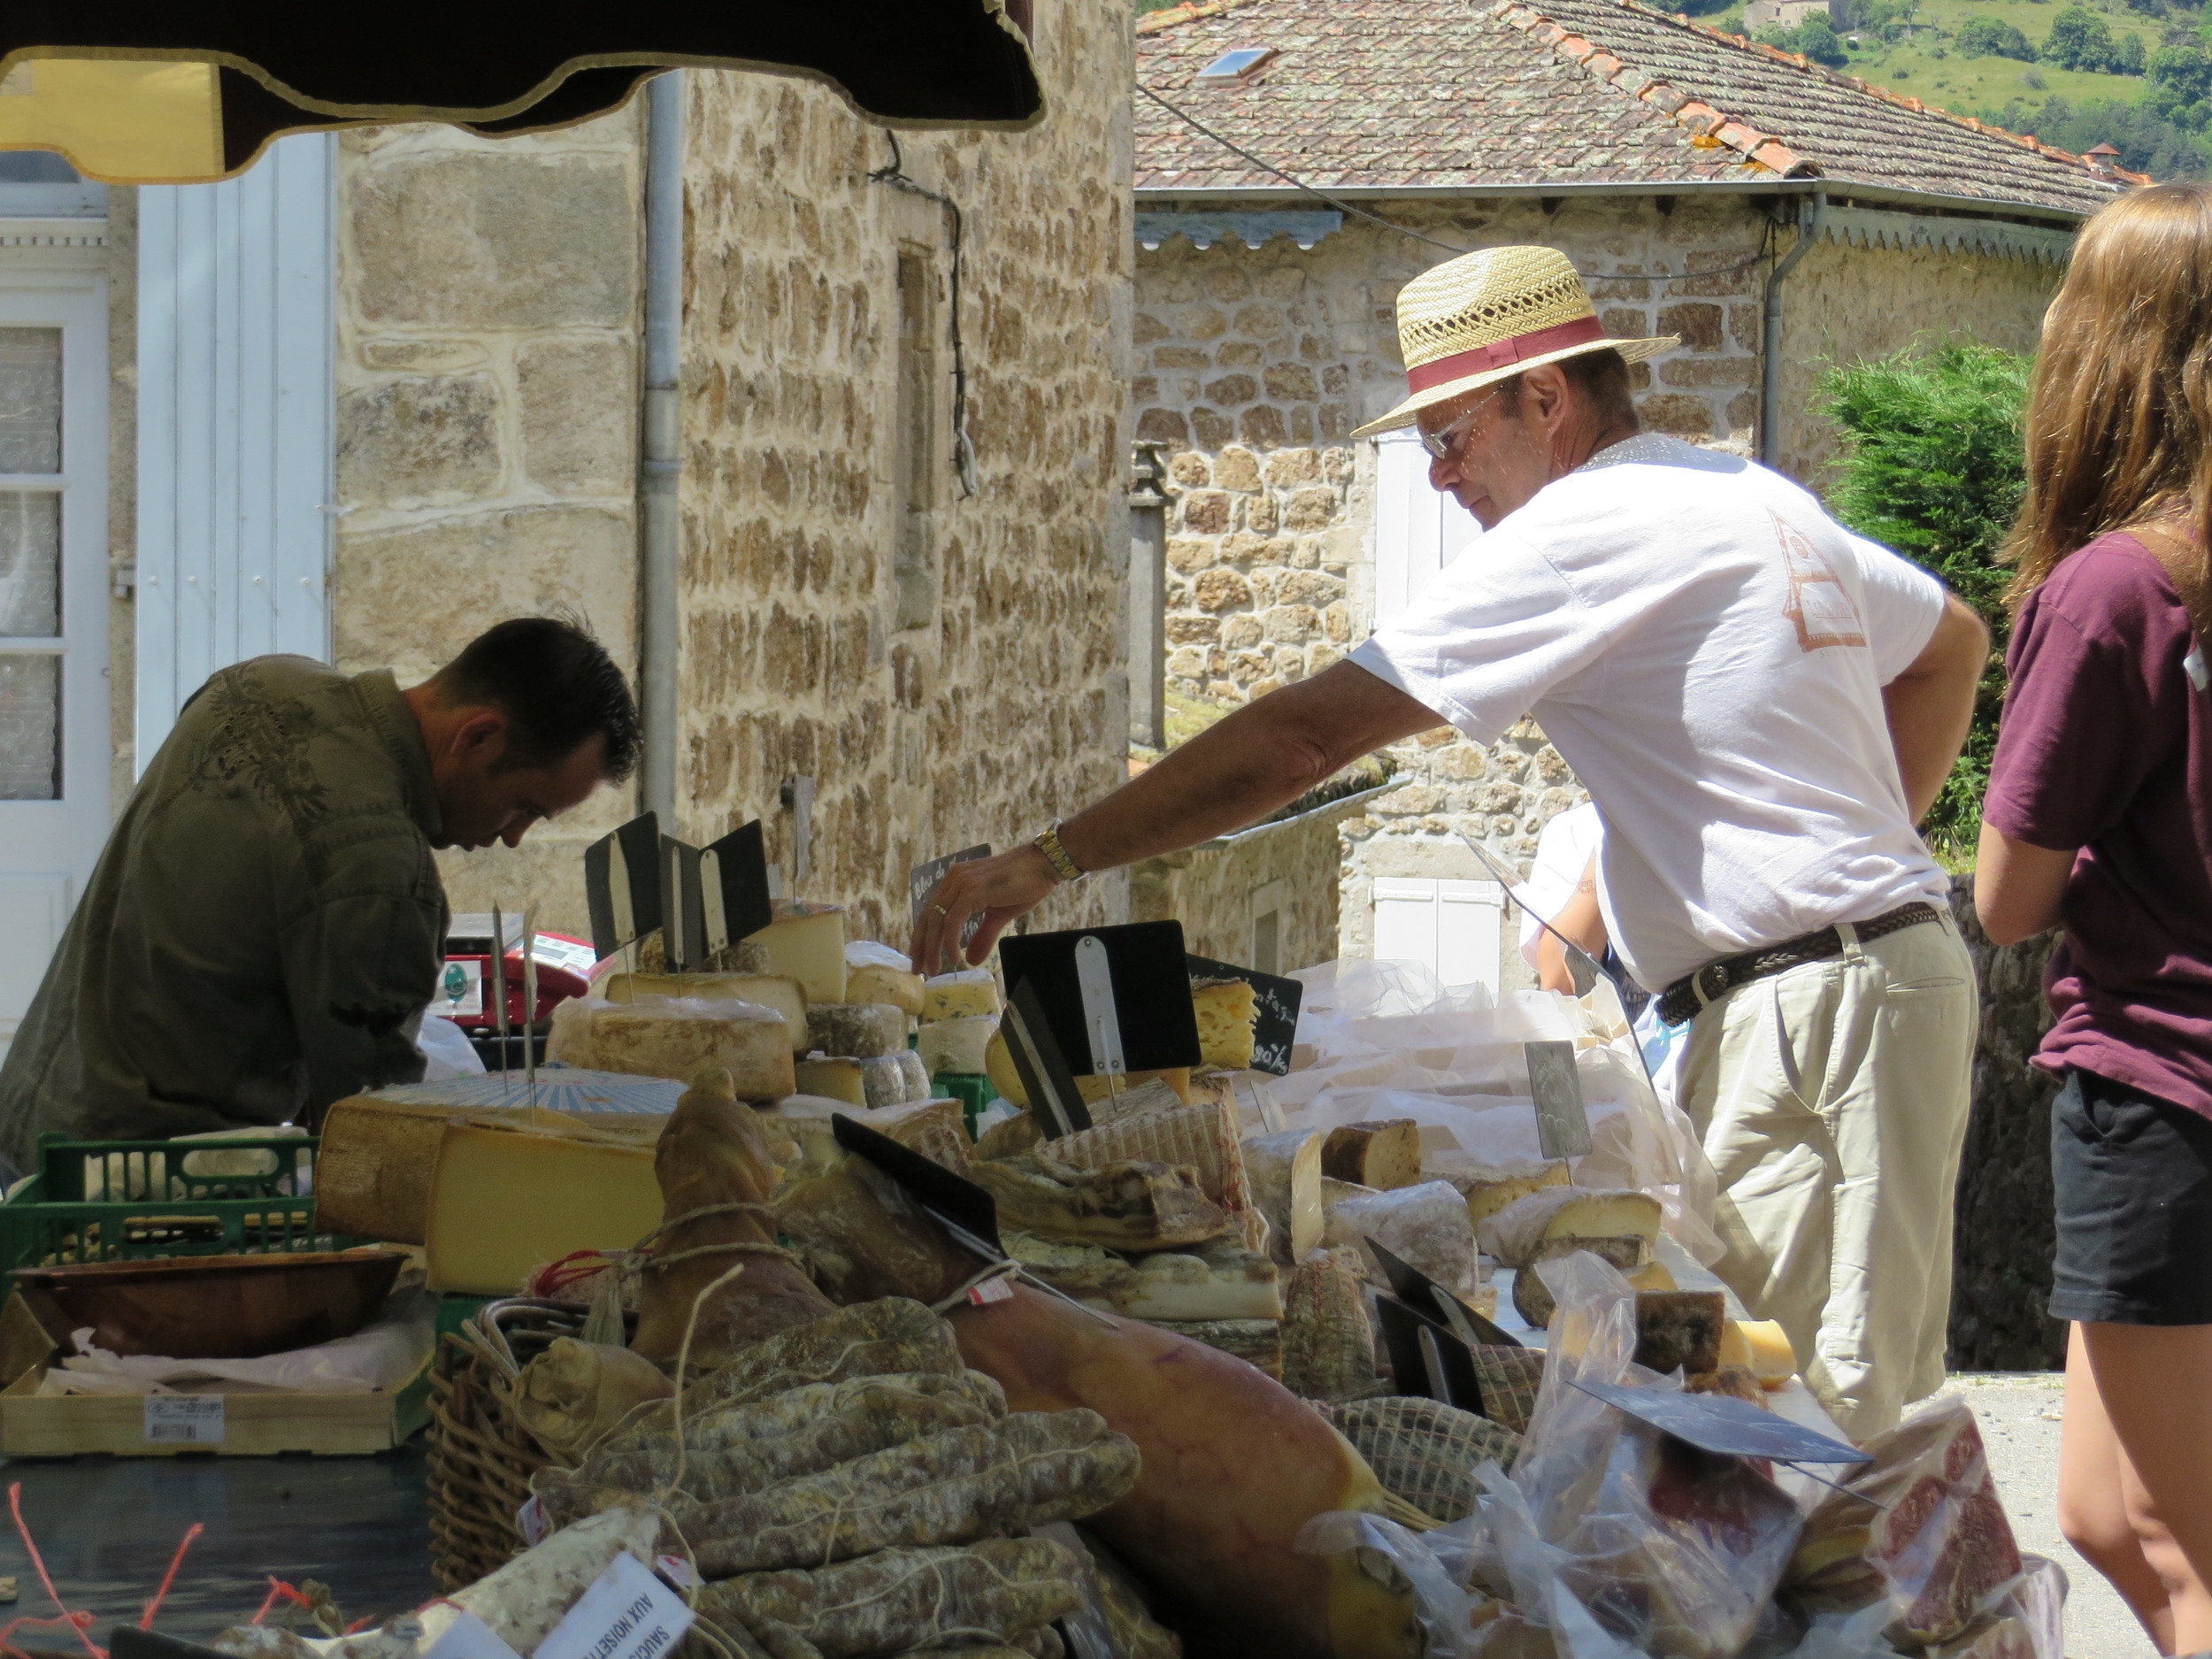 Browsing the local markets at St. Pierreville